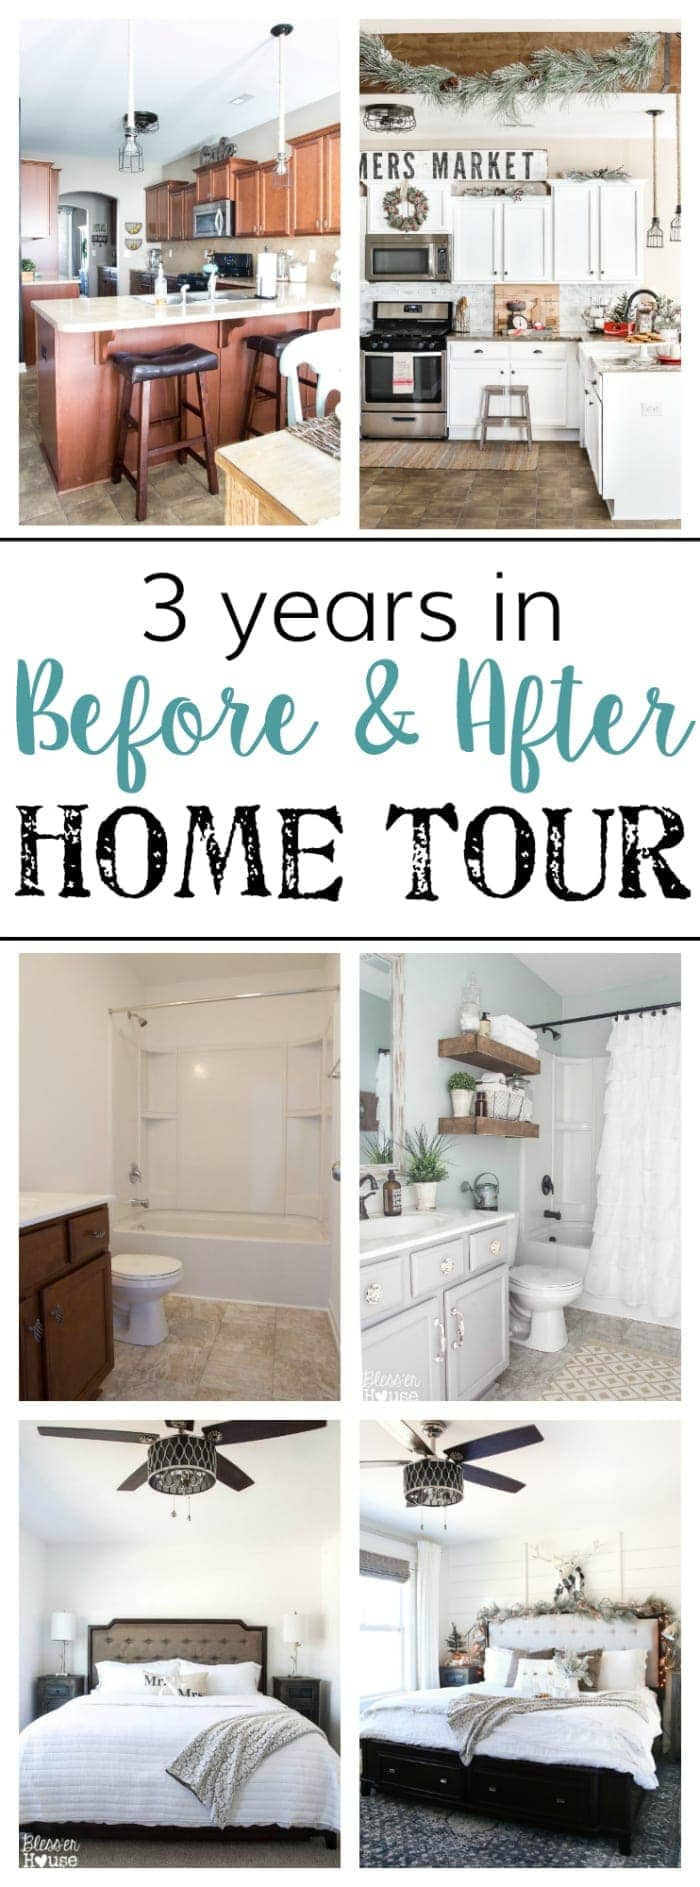 3 Year Blogiversary Before and After Home Tour | blesserhouse.com - A full home tour of a suburban tract cookie cutter house with before and after shots and DIY home improvement project inspirations on a budget.